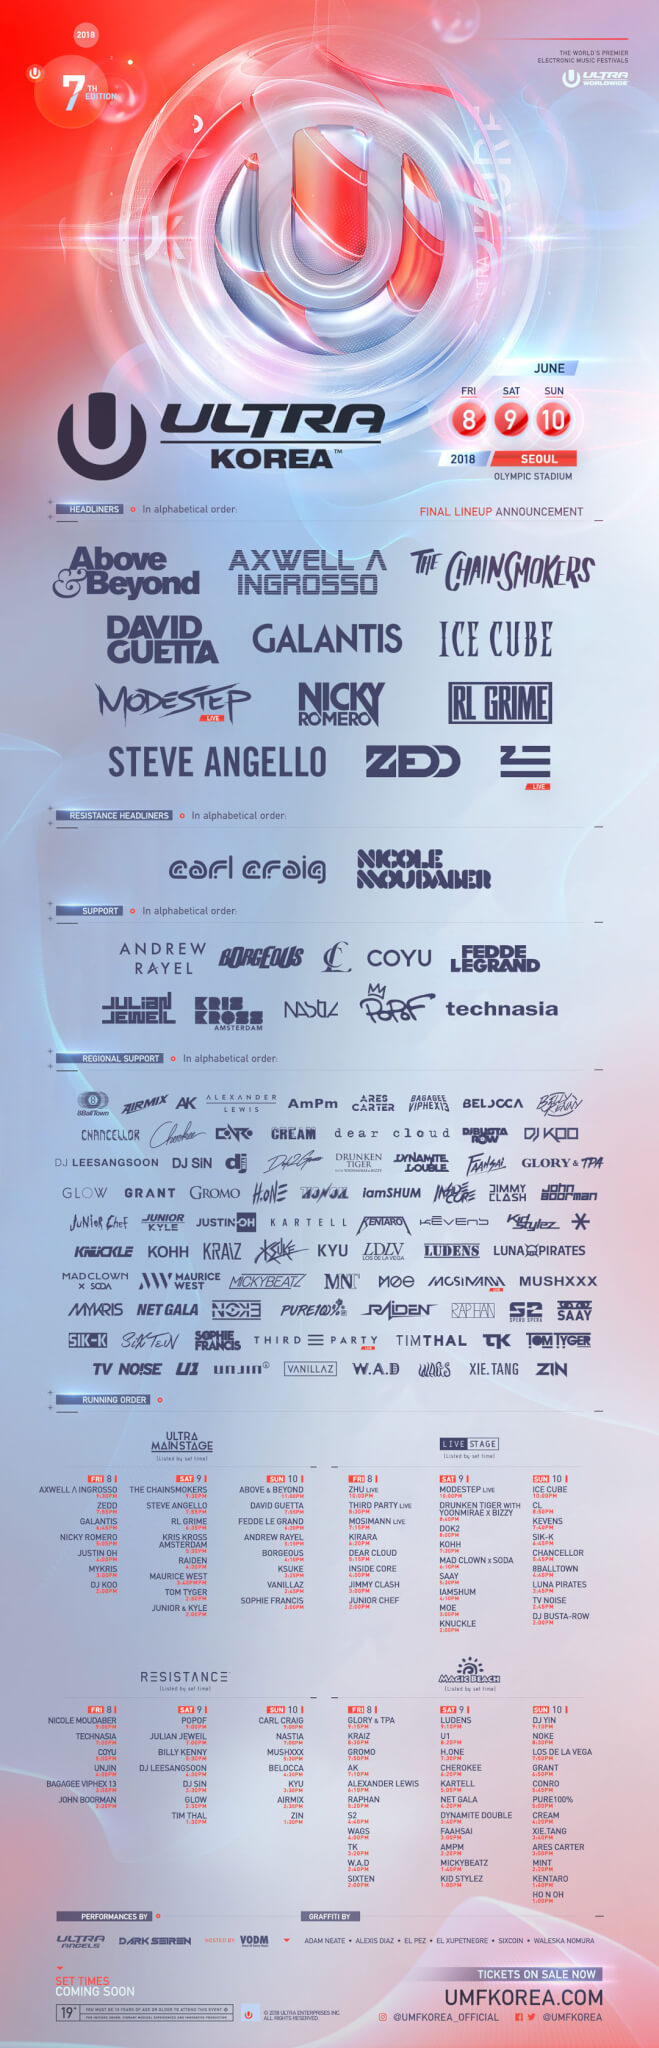 Ultra Korea 2018 Full Lineup